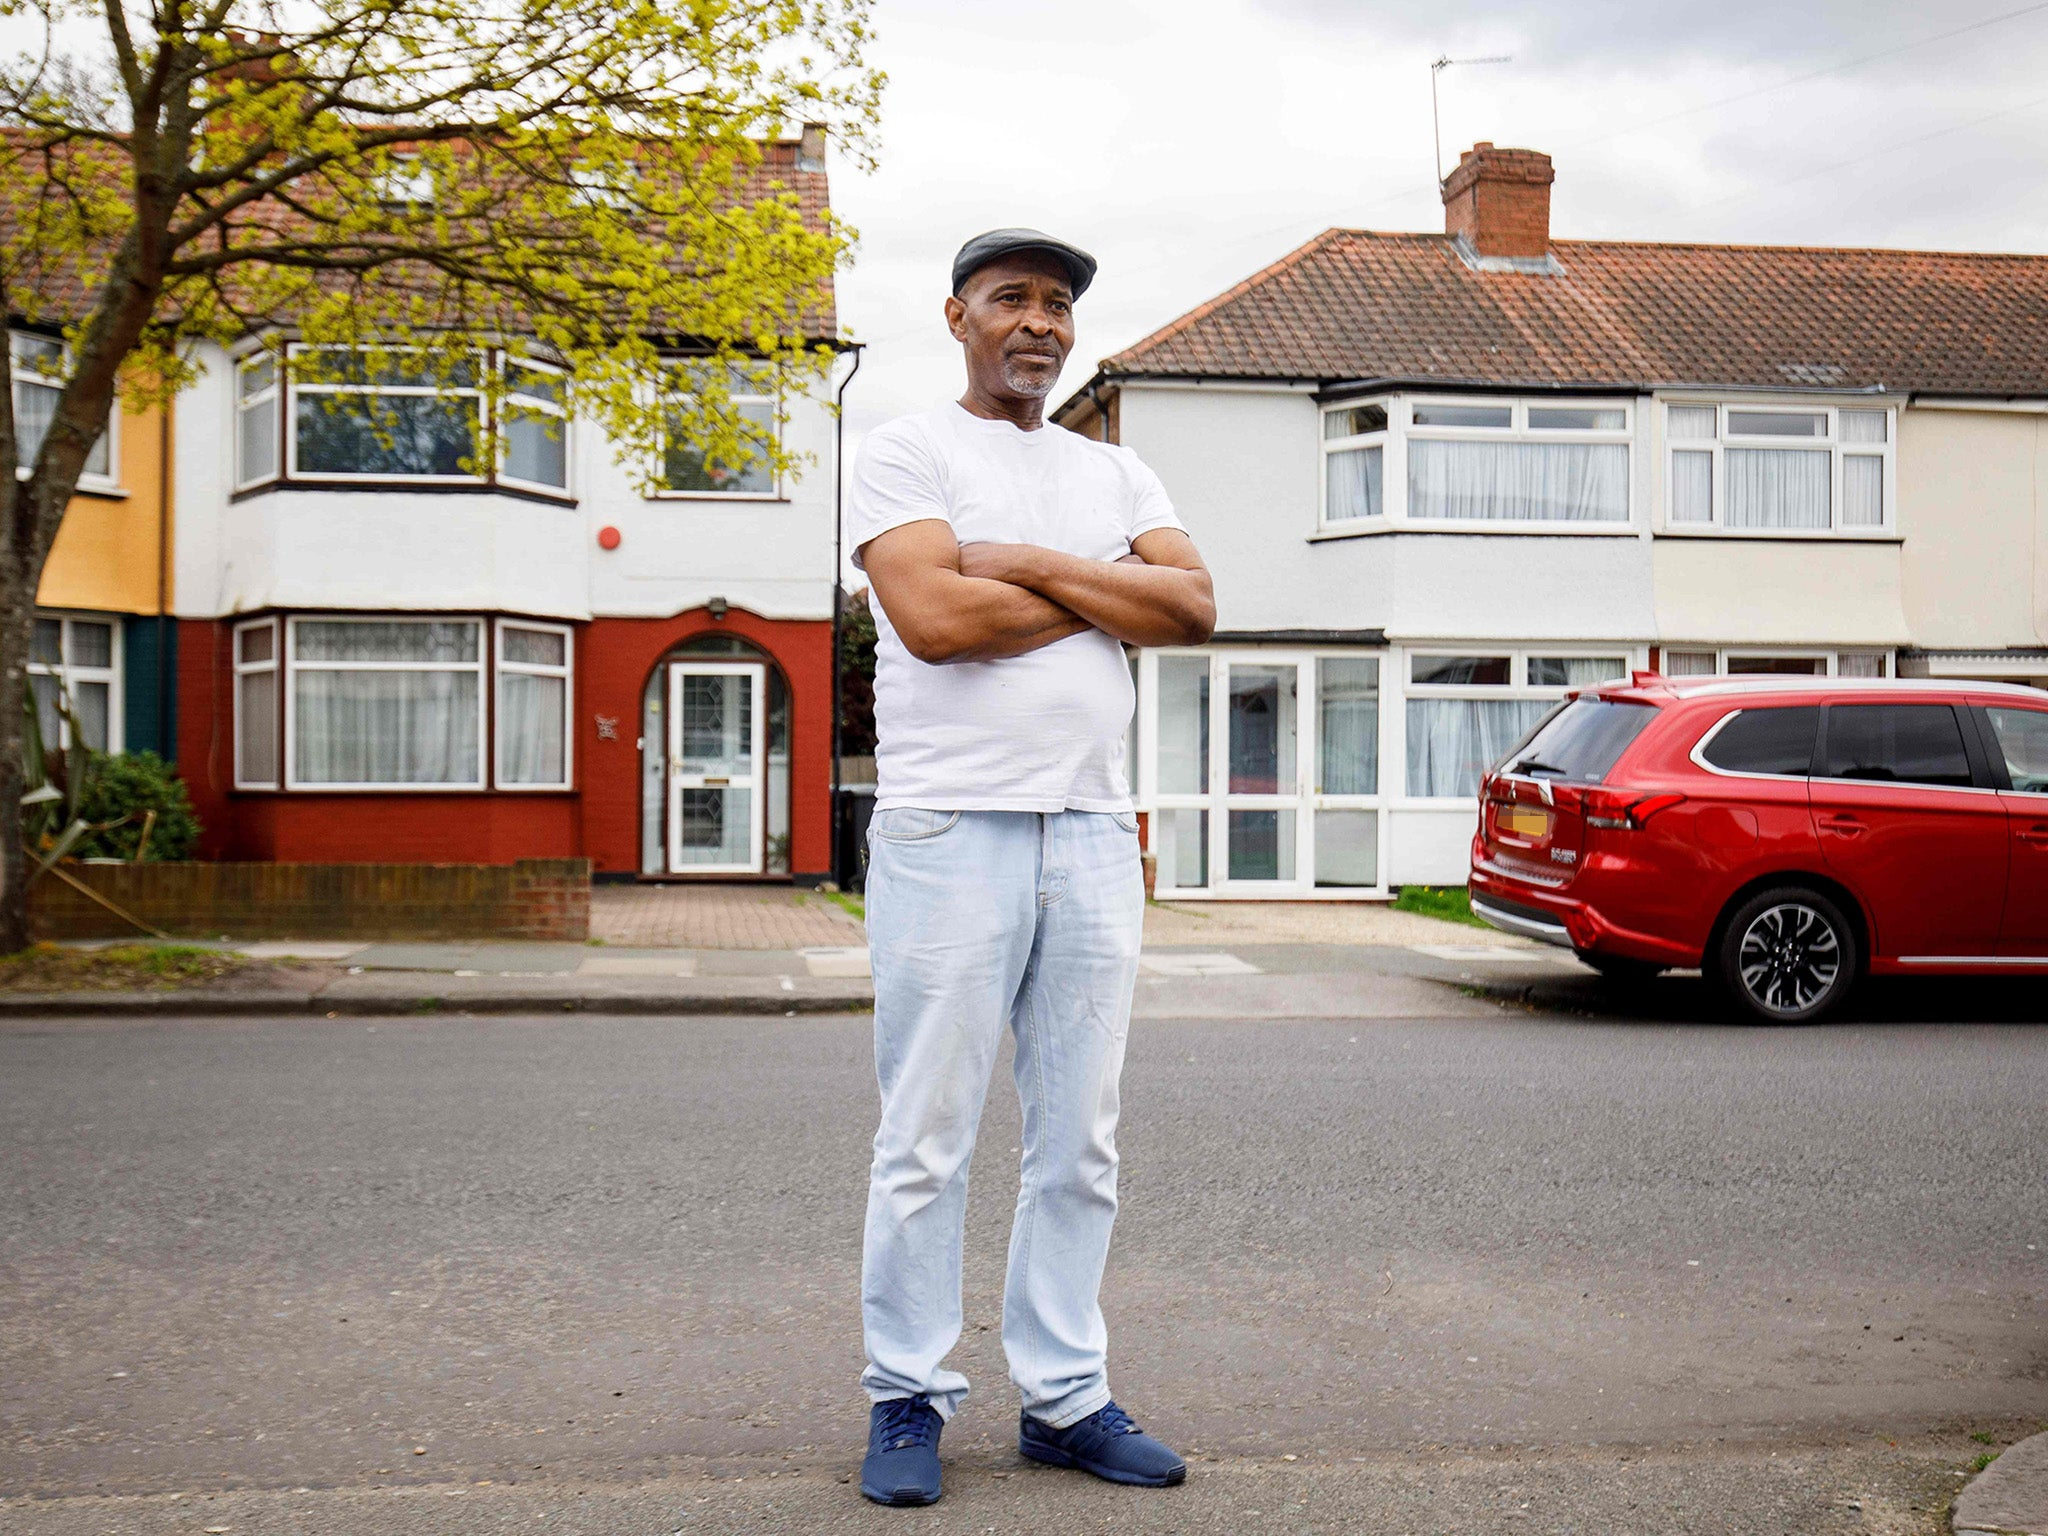 'Help me, this is my home': Desperate pleas from detained Windrush citizens revealed after Home Office forced to release files